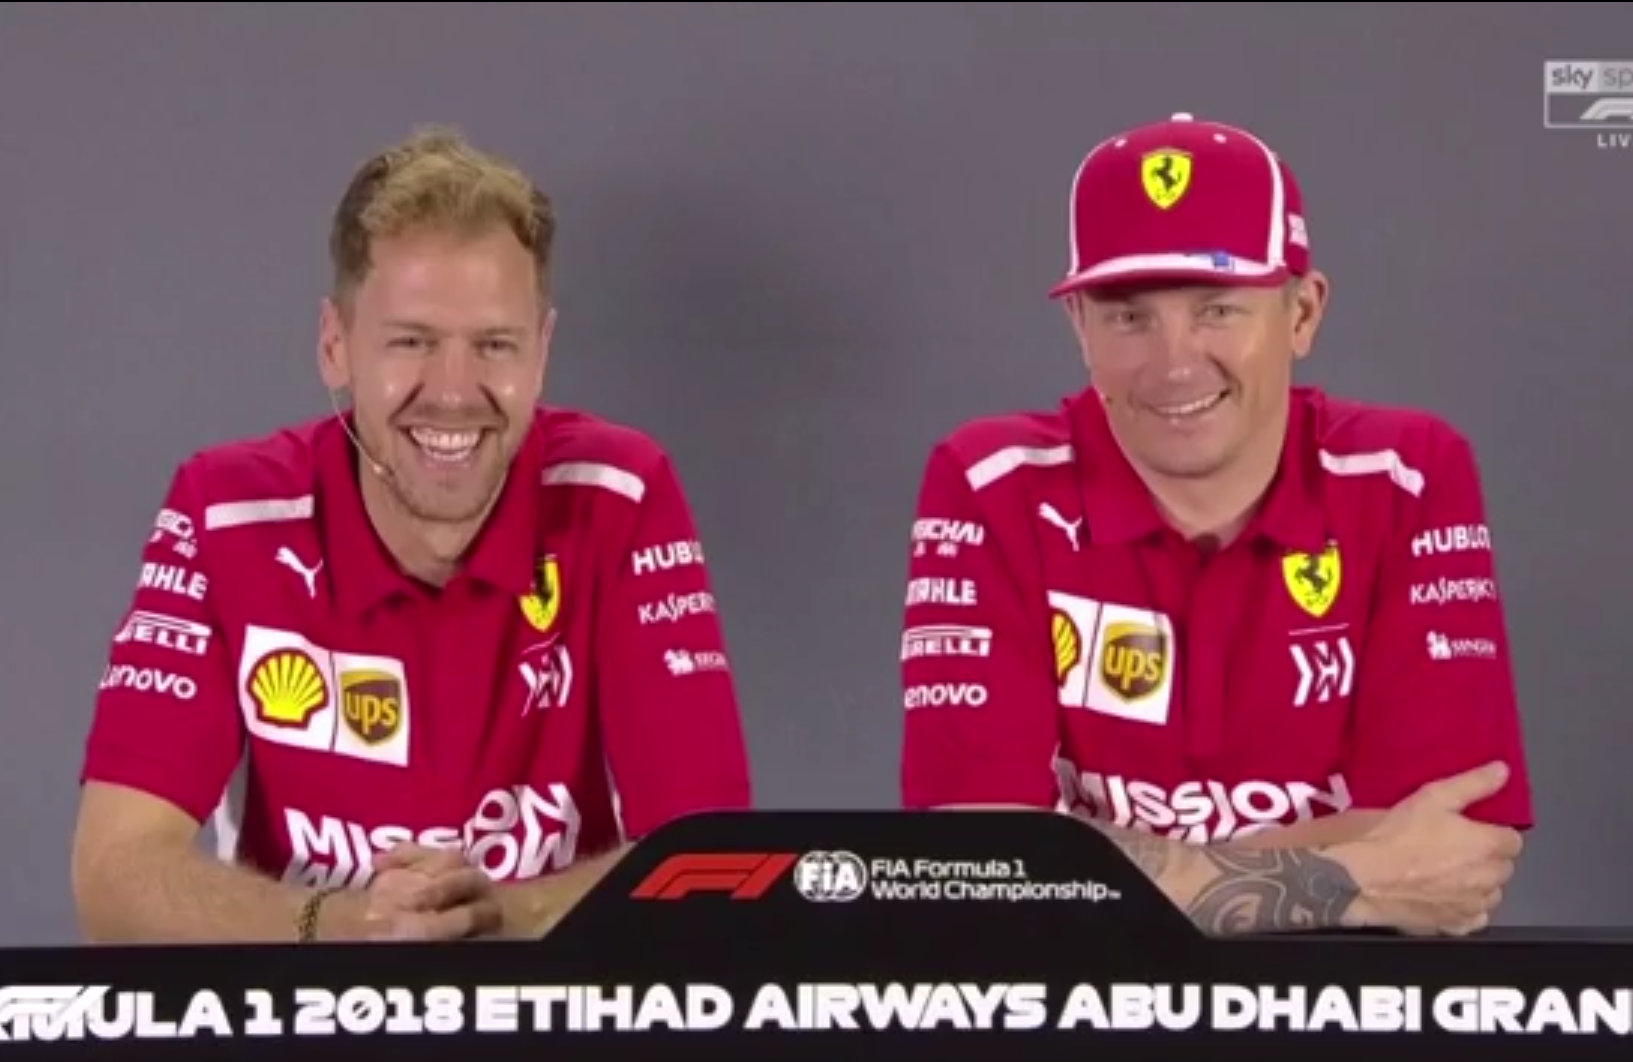 Sebastian Vettel On What He Is Going To Miss About Kimi Raikkonen